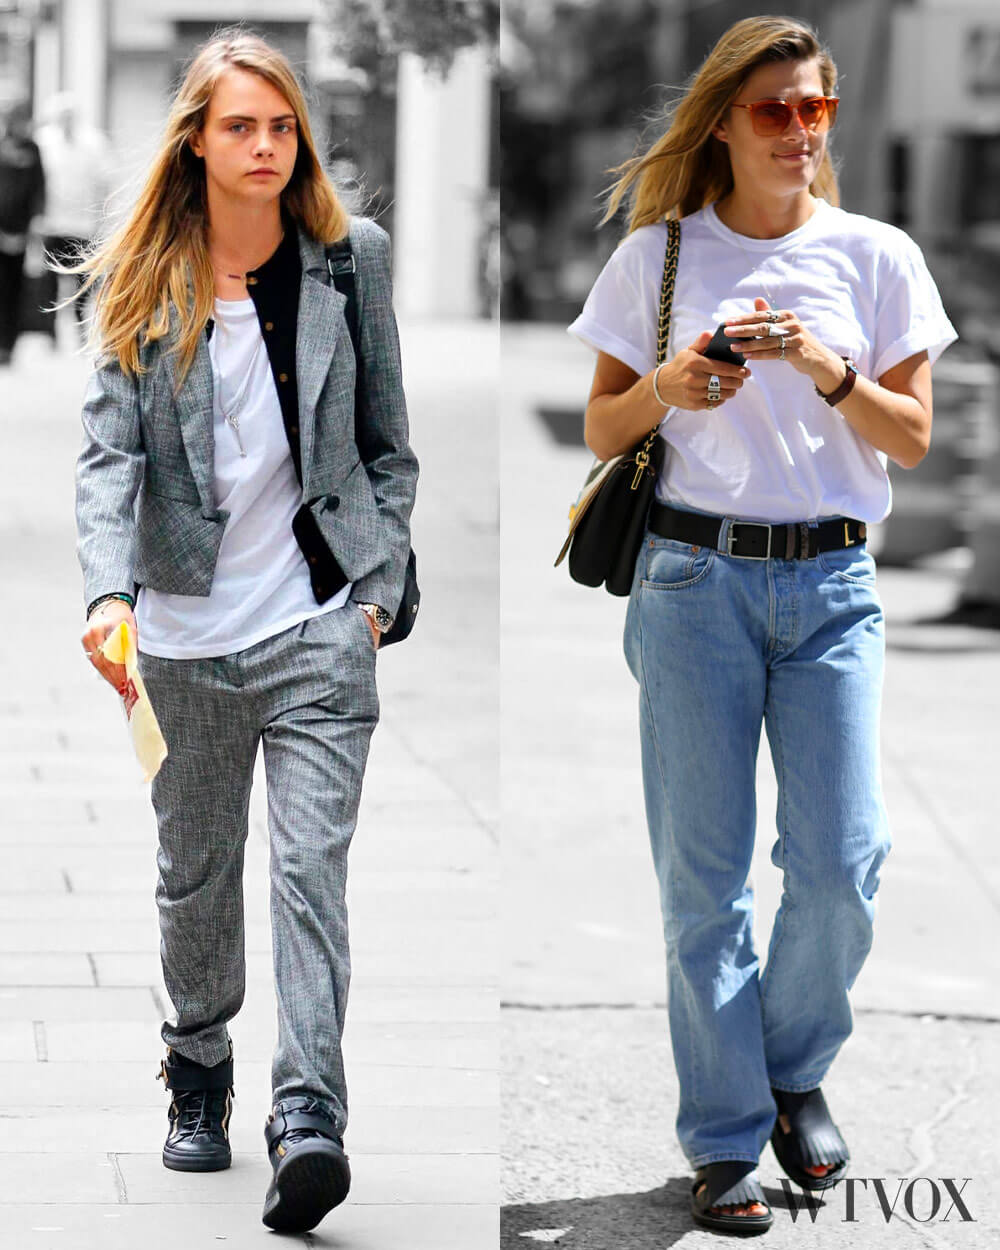 Cara Delevingne and Natalie Hartley in Androgynous Fashion